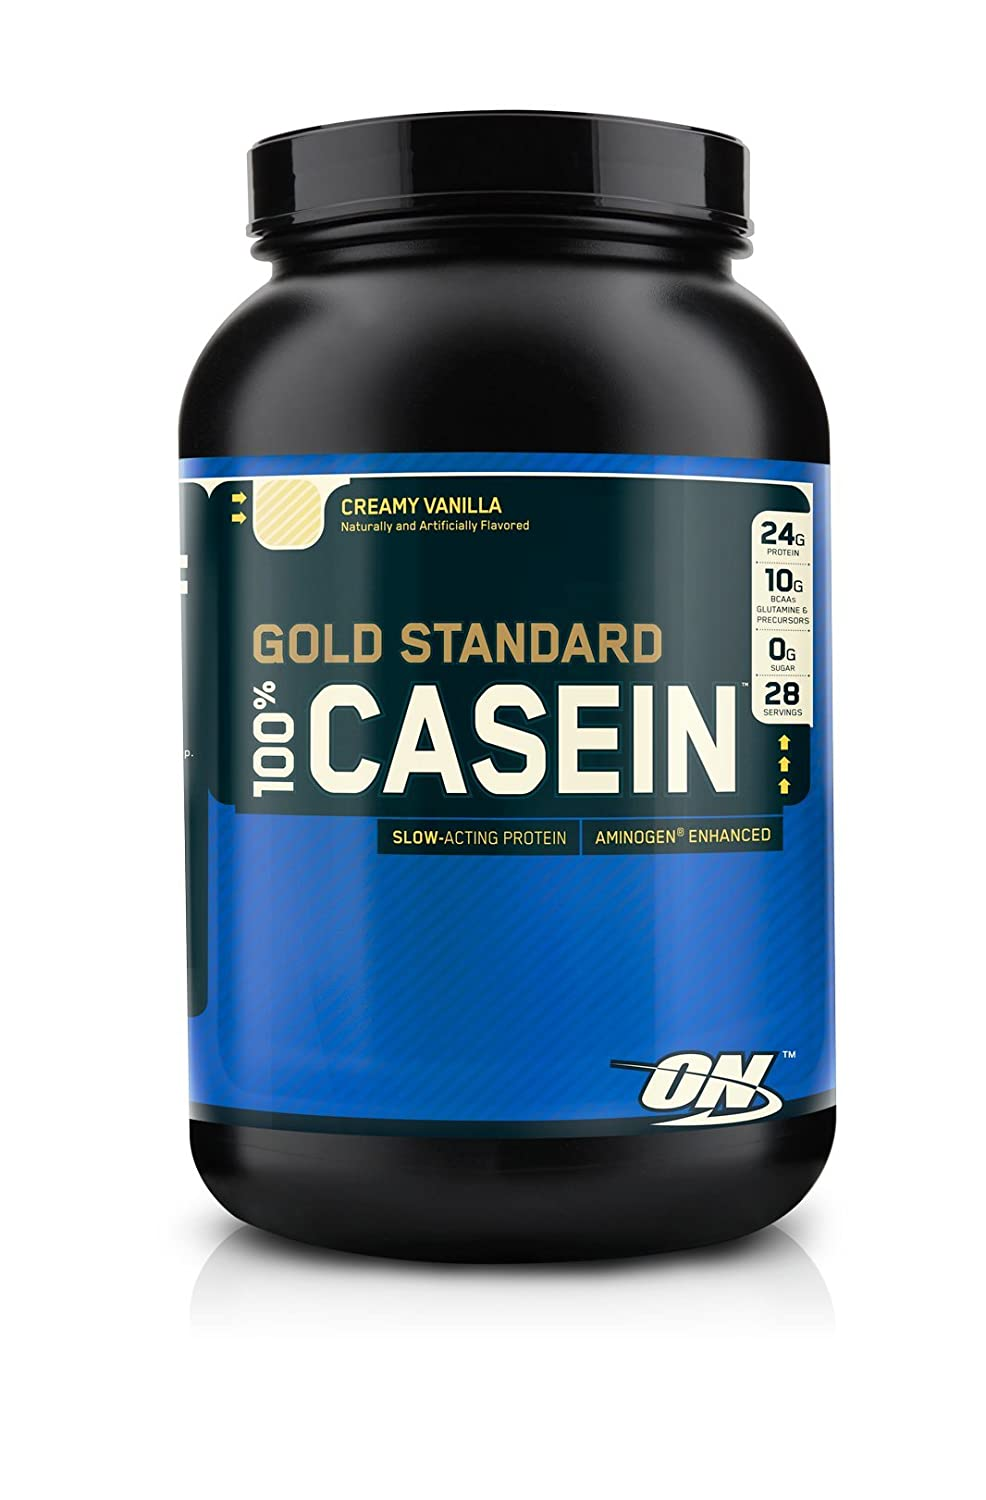 Casein: what it is Why casein protein is not recommended 58